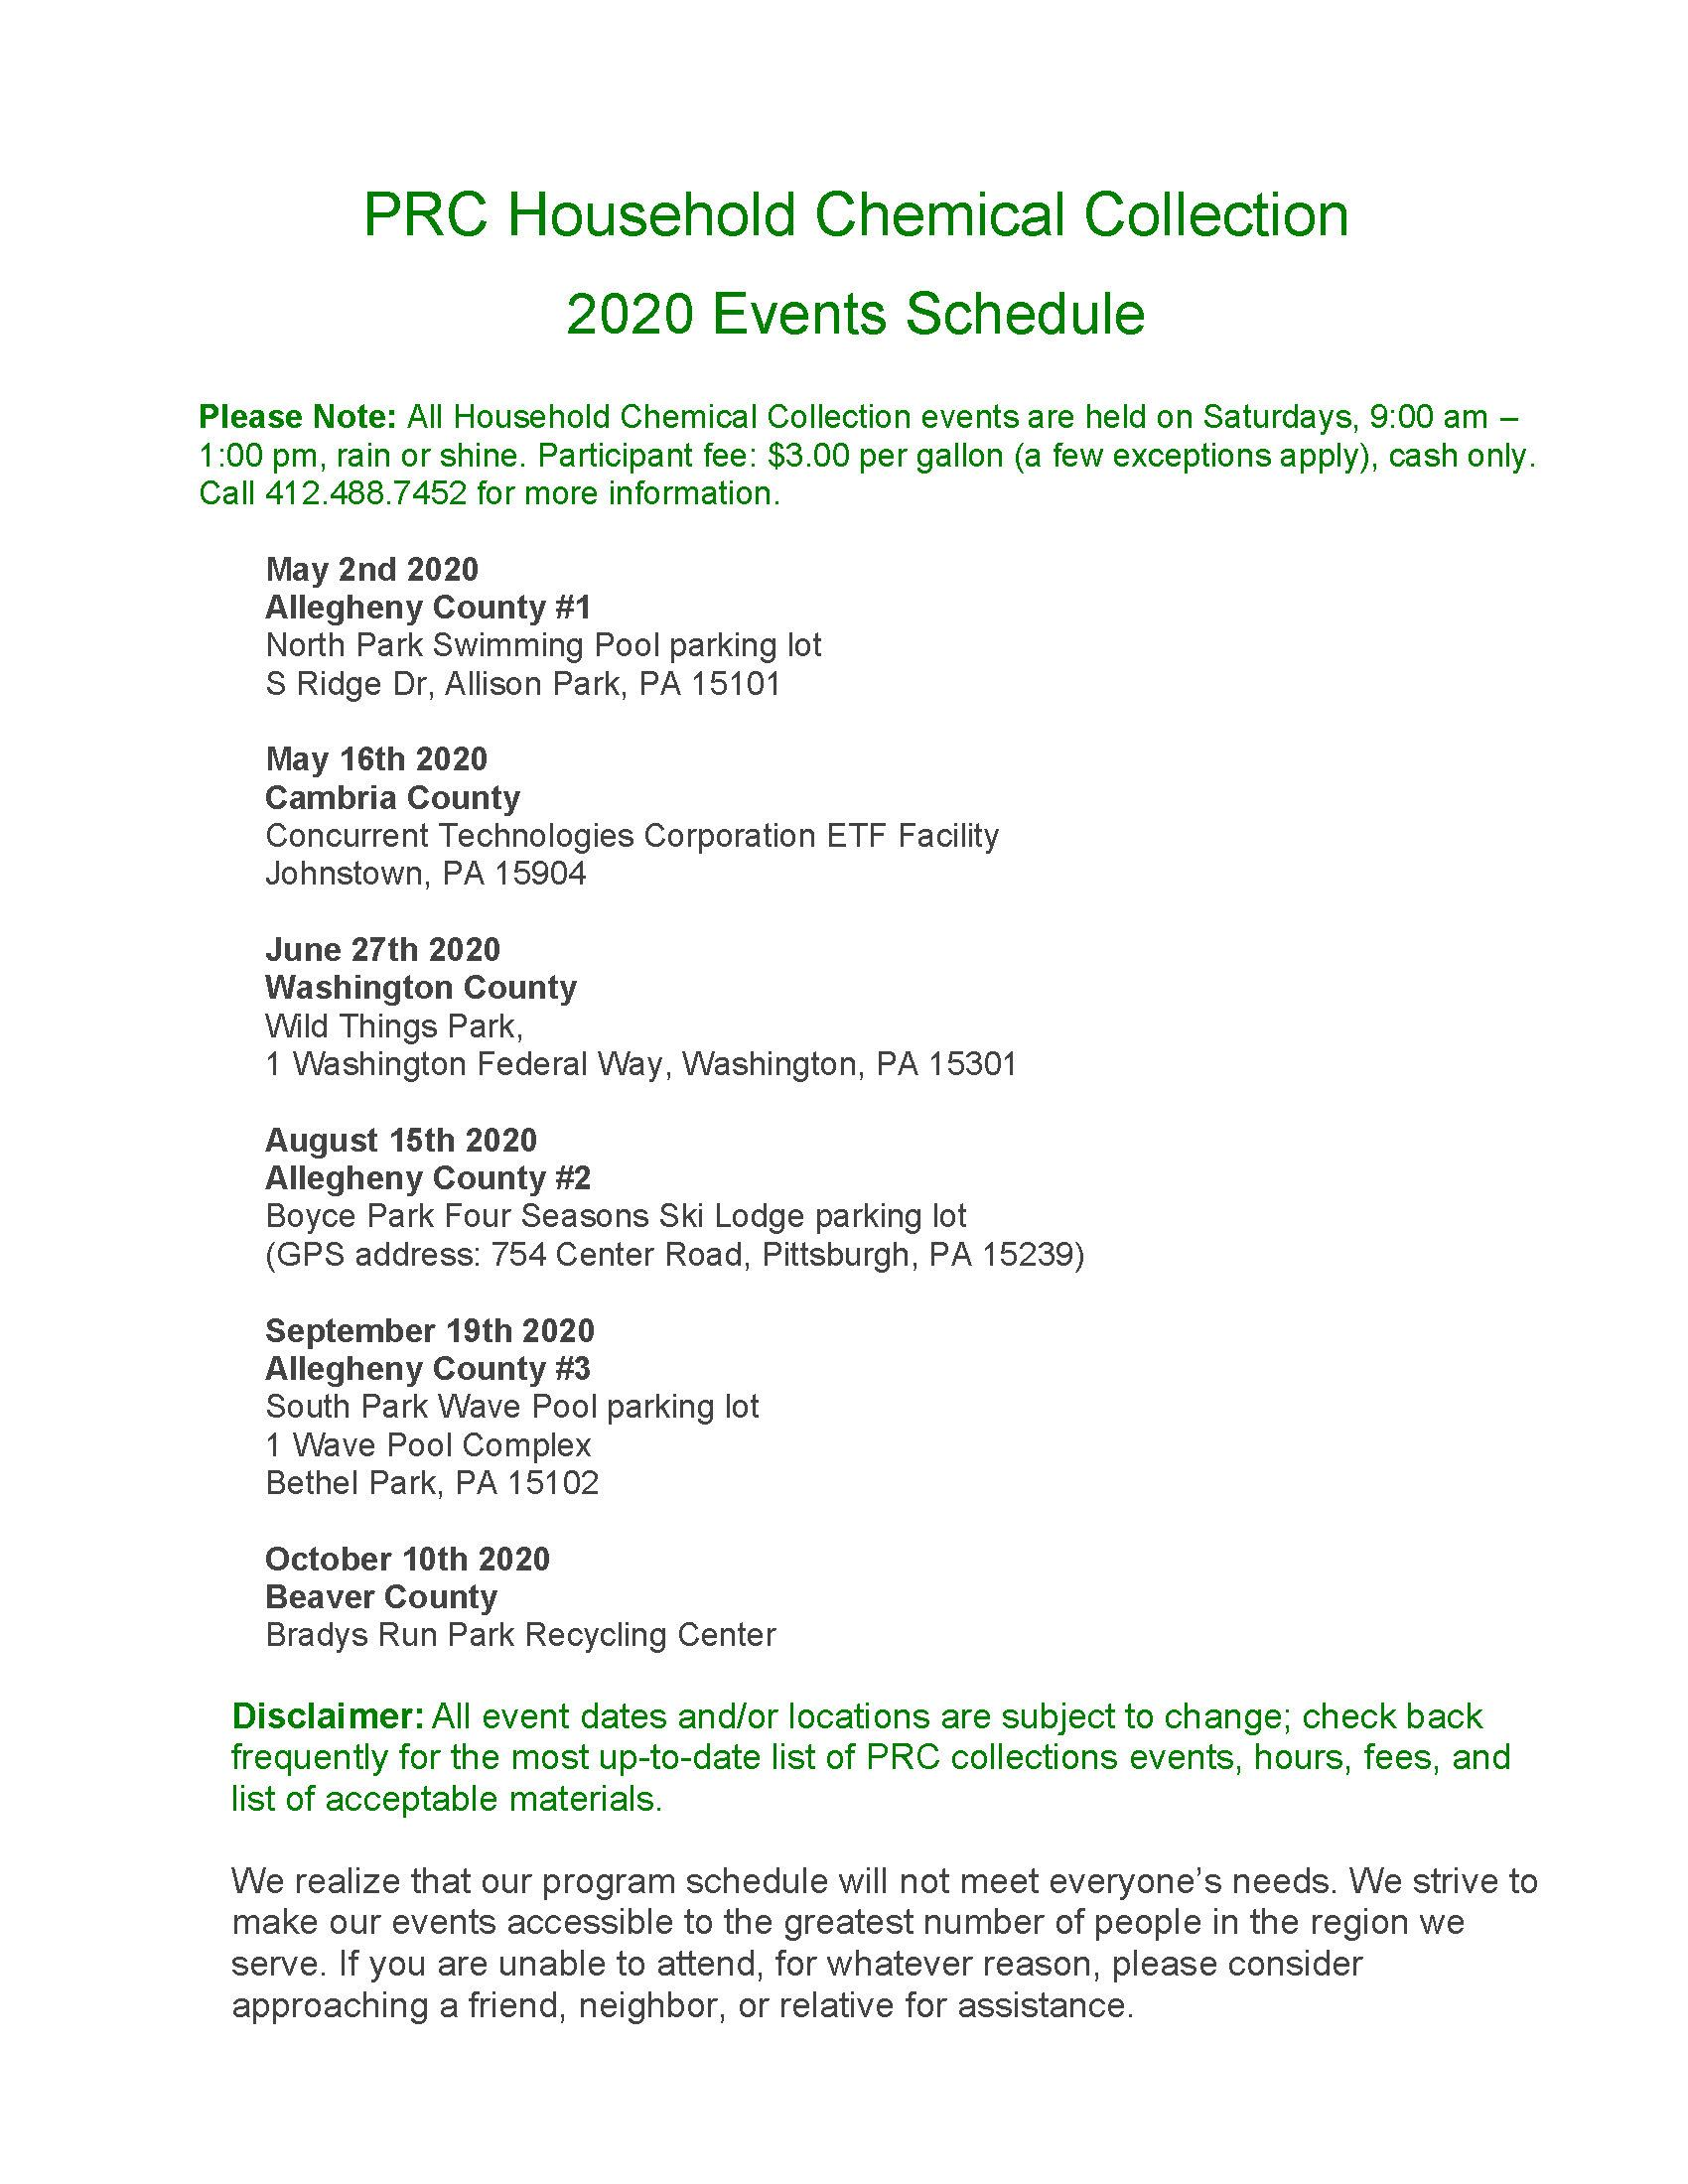 2020 Household Chemical Collection Events